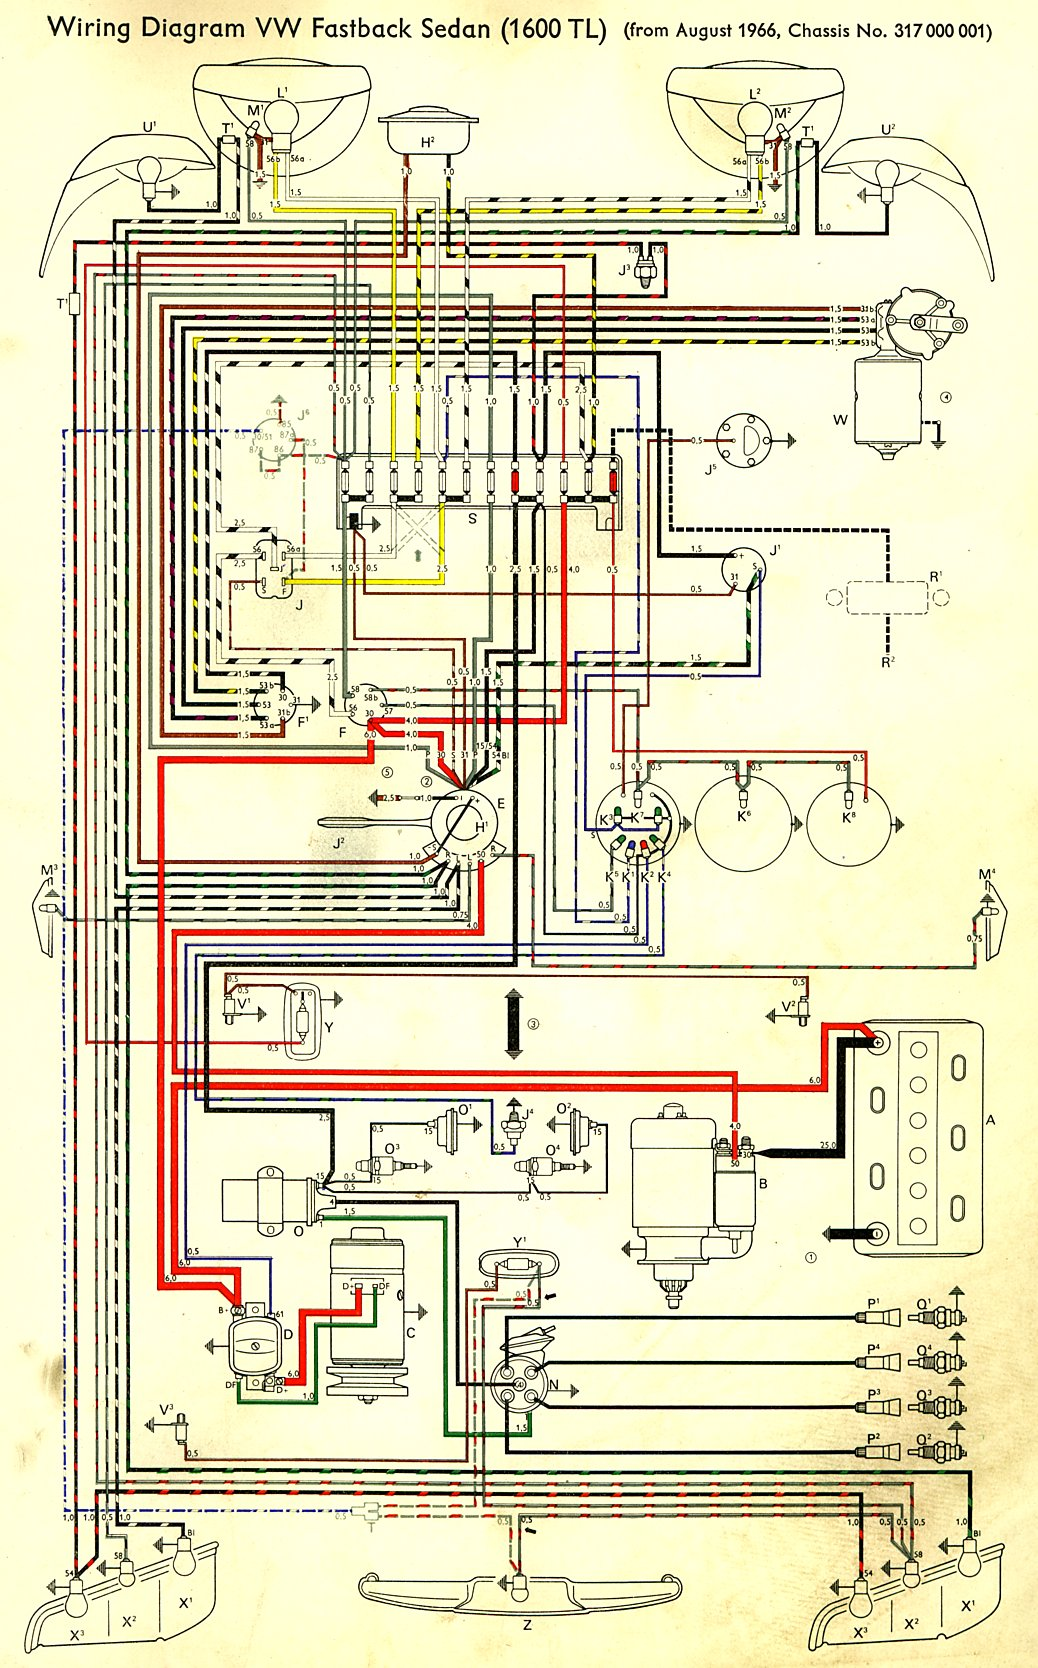 73 Vw Squareback Wiring Diagram Trusted Diagrams 74 Beetle 1973 Type 3 Rh Dafpods Co 1974